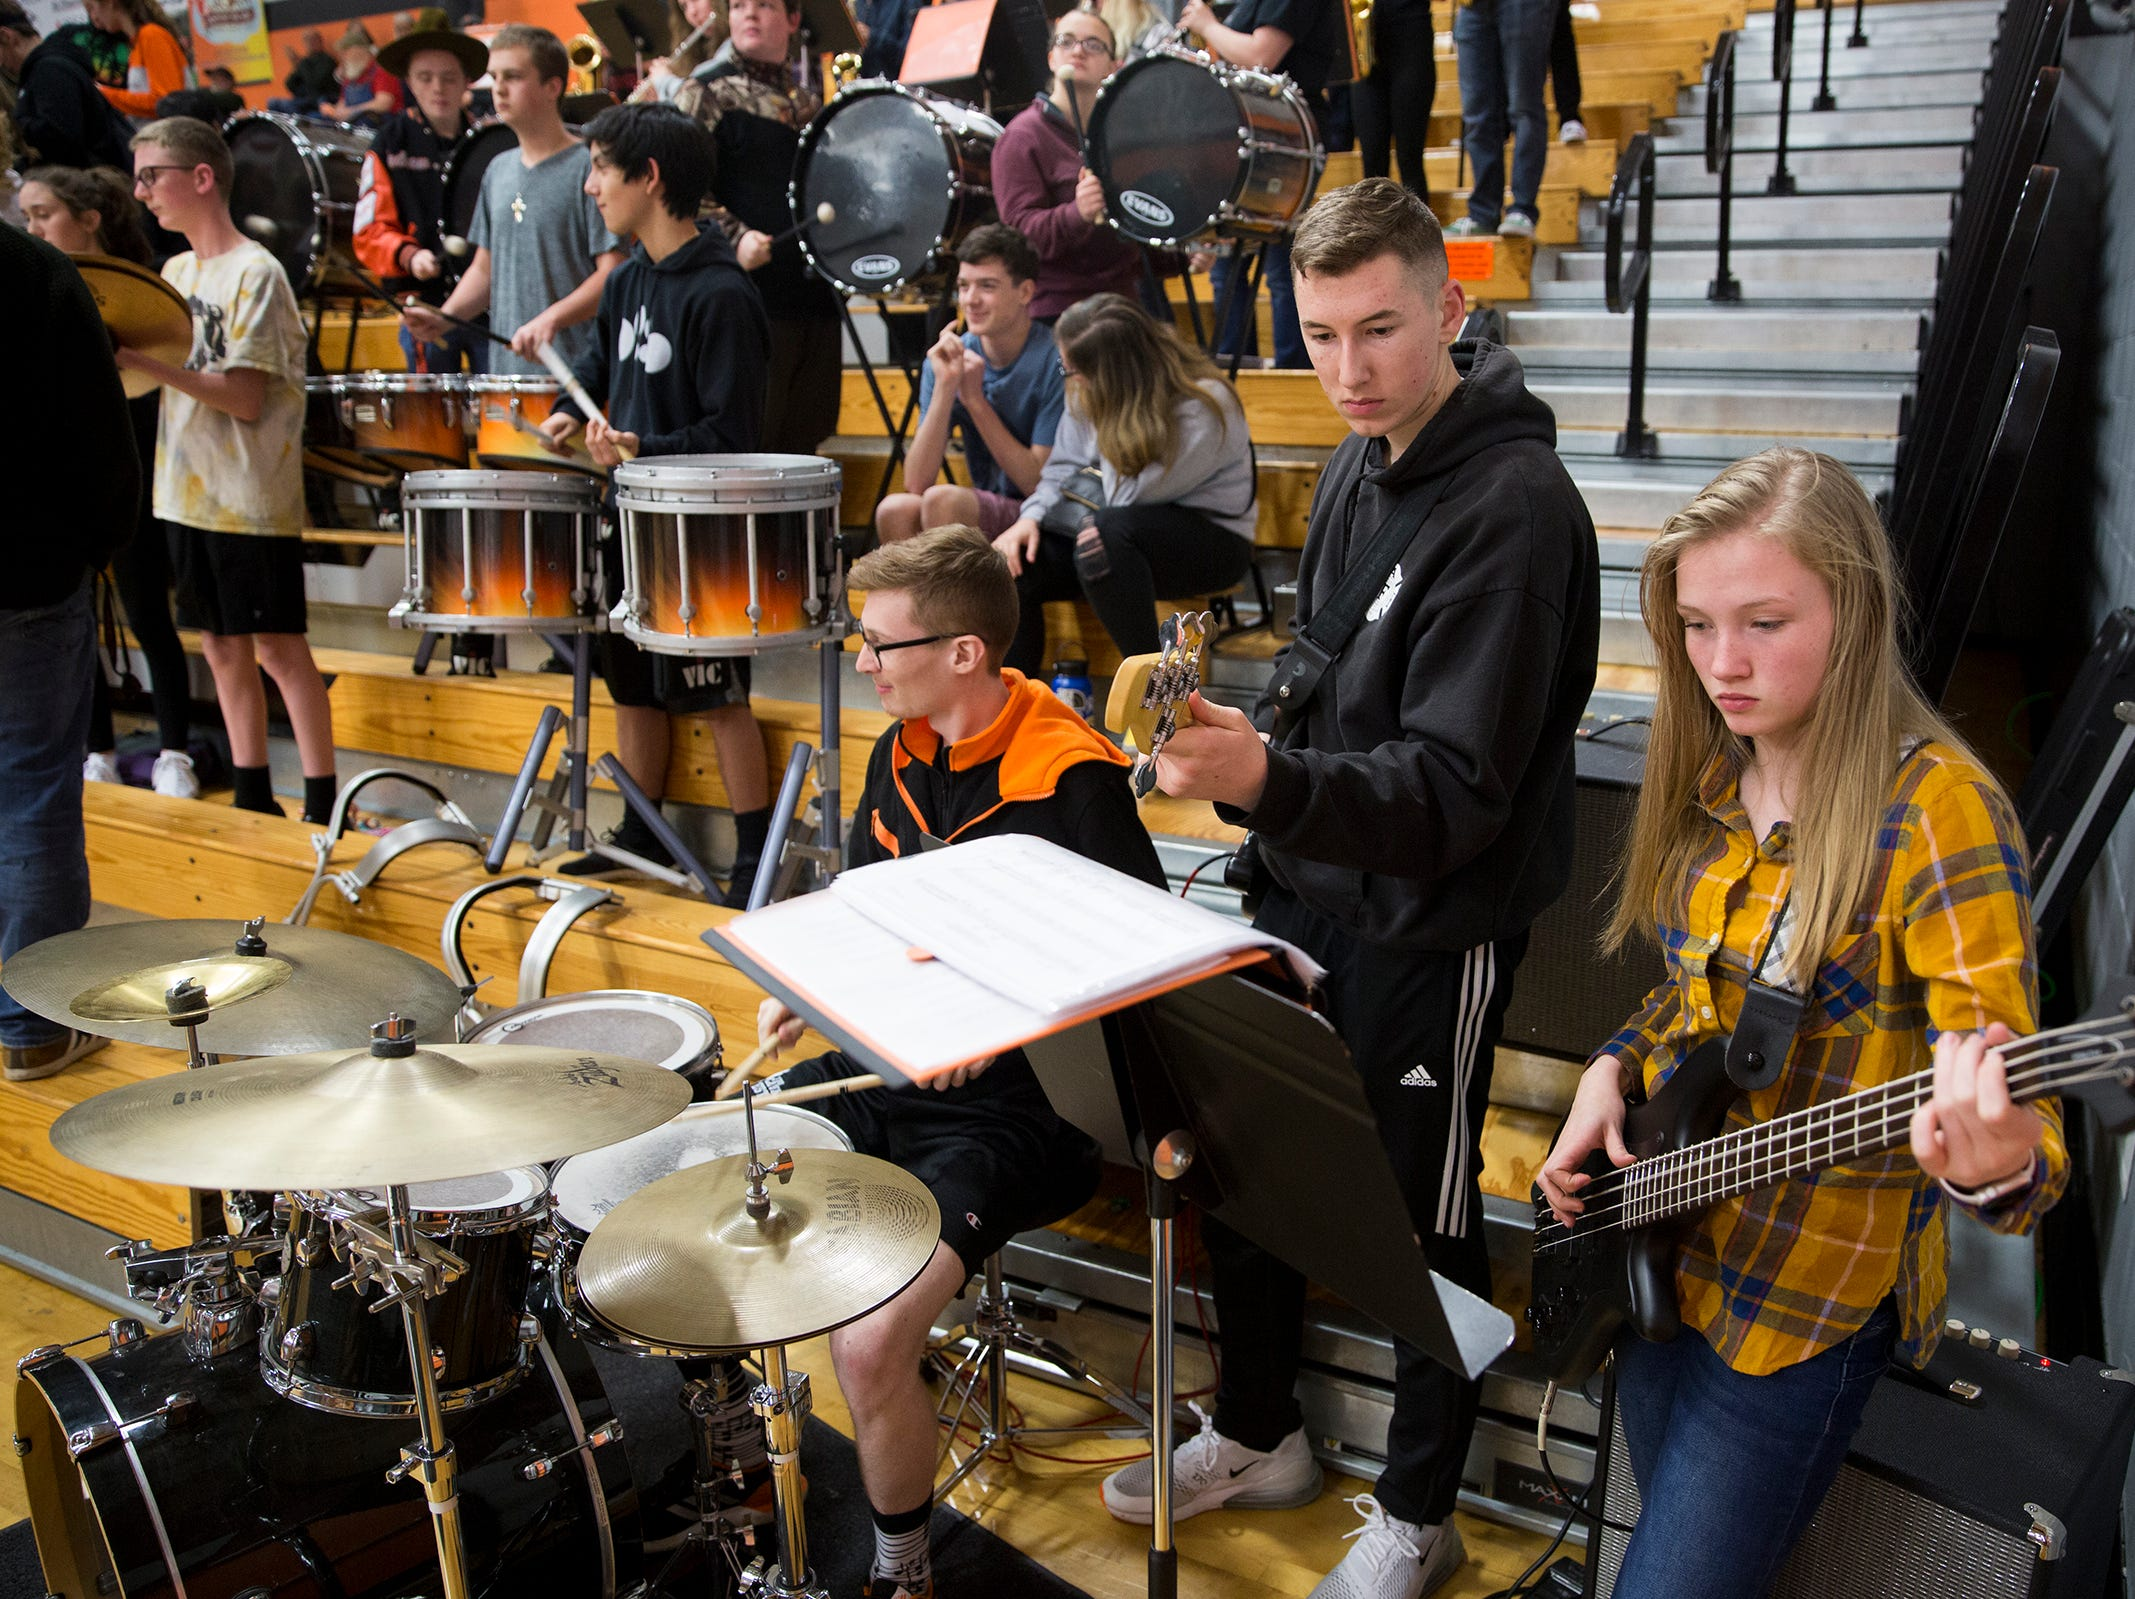 The Silverton High School band during the Dallas High School vs. Silverton High School girls basketball game in Silverton on Tuesday, Dec. 8, 2019.